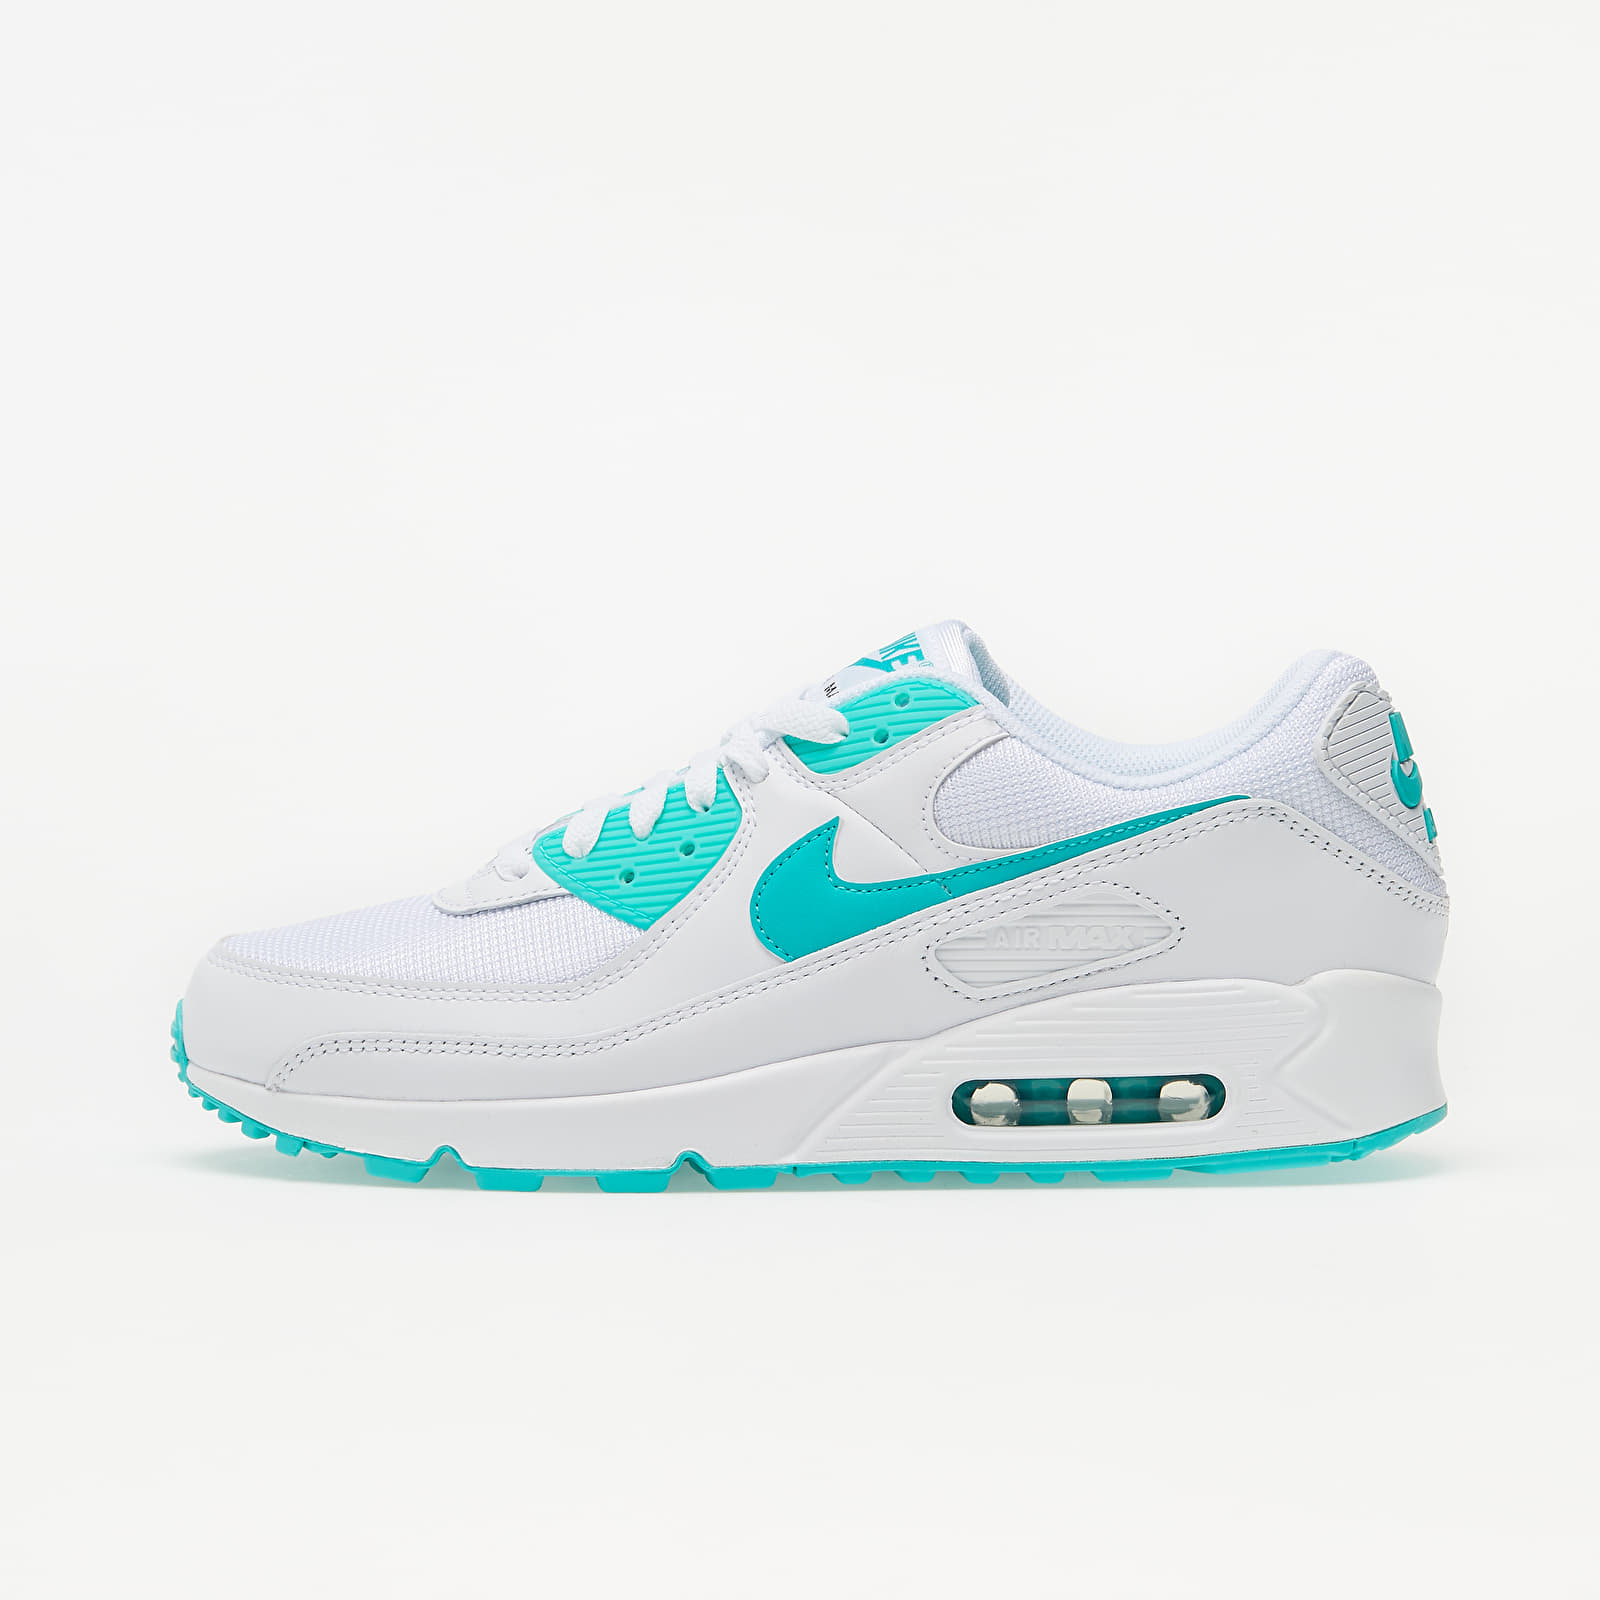 Nike Air Max 90 White/ Hyper Jade-Black EUR 42